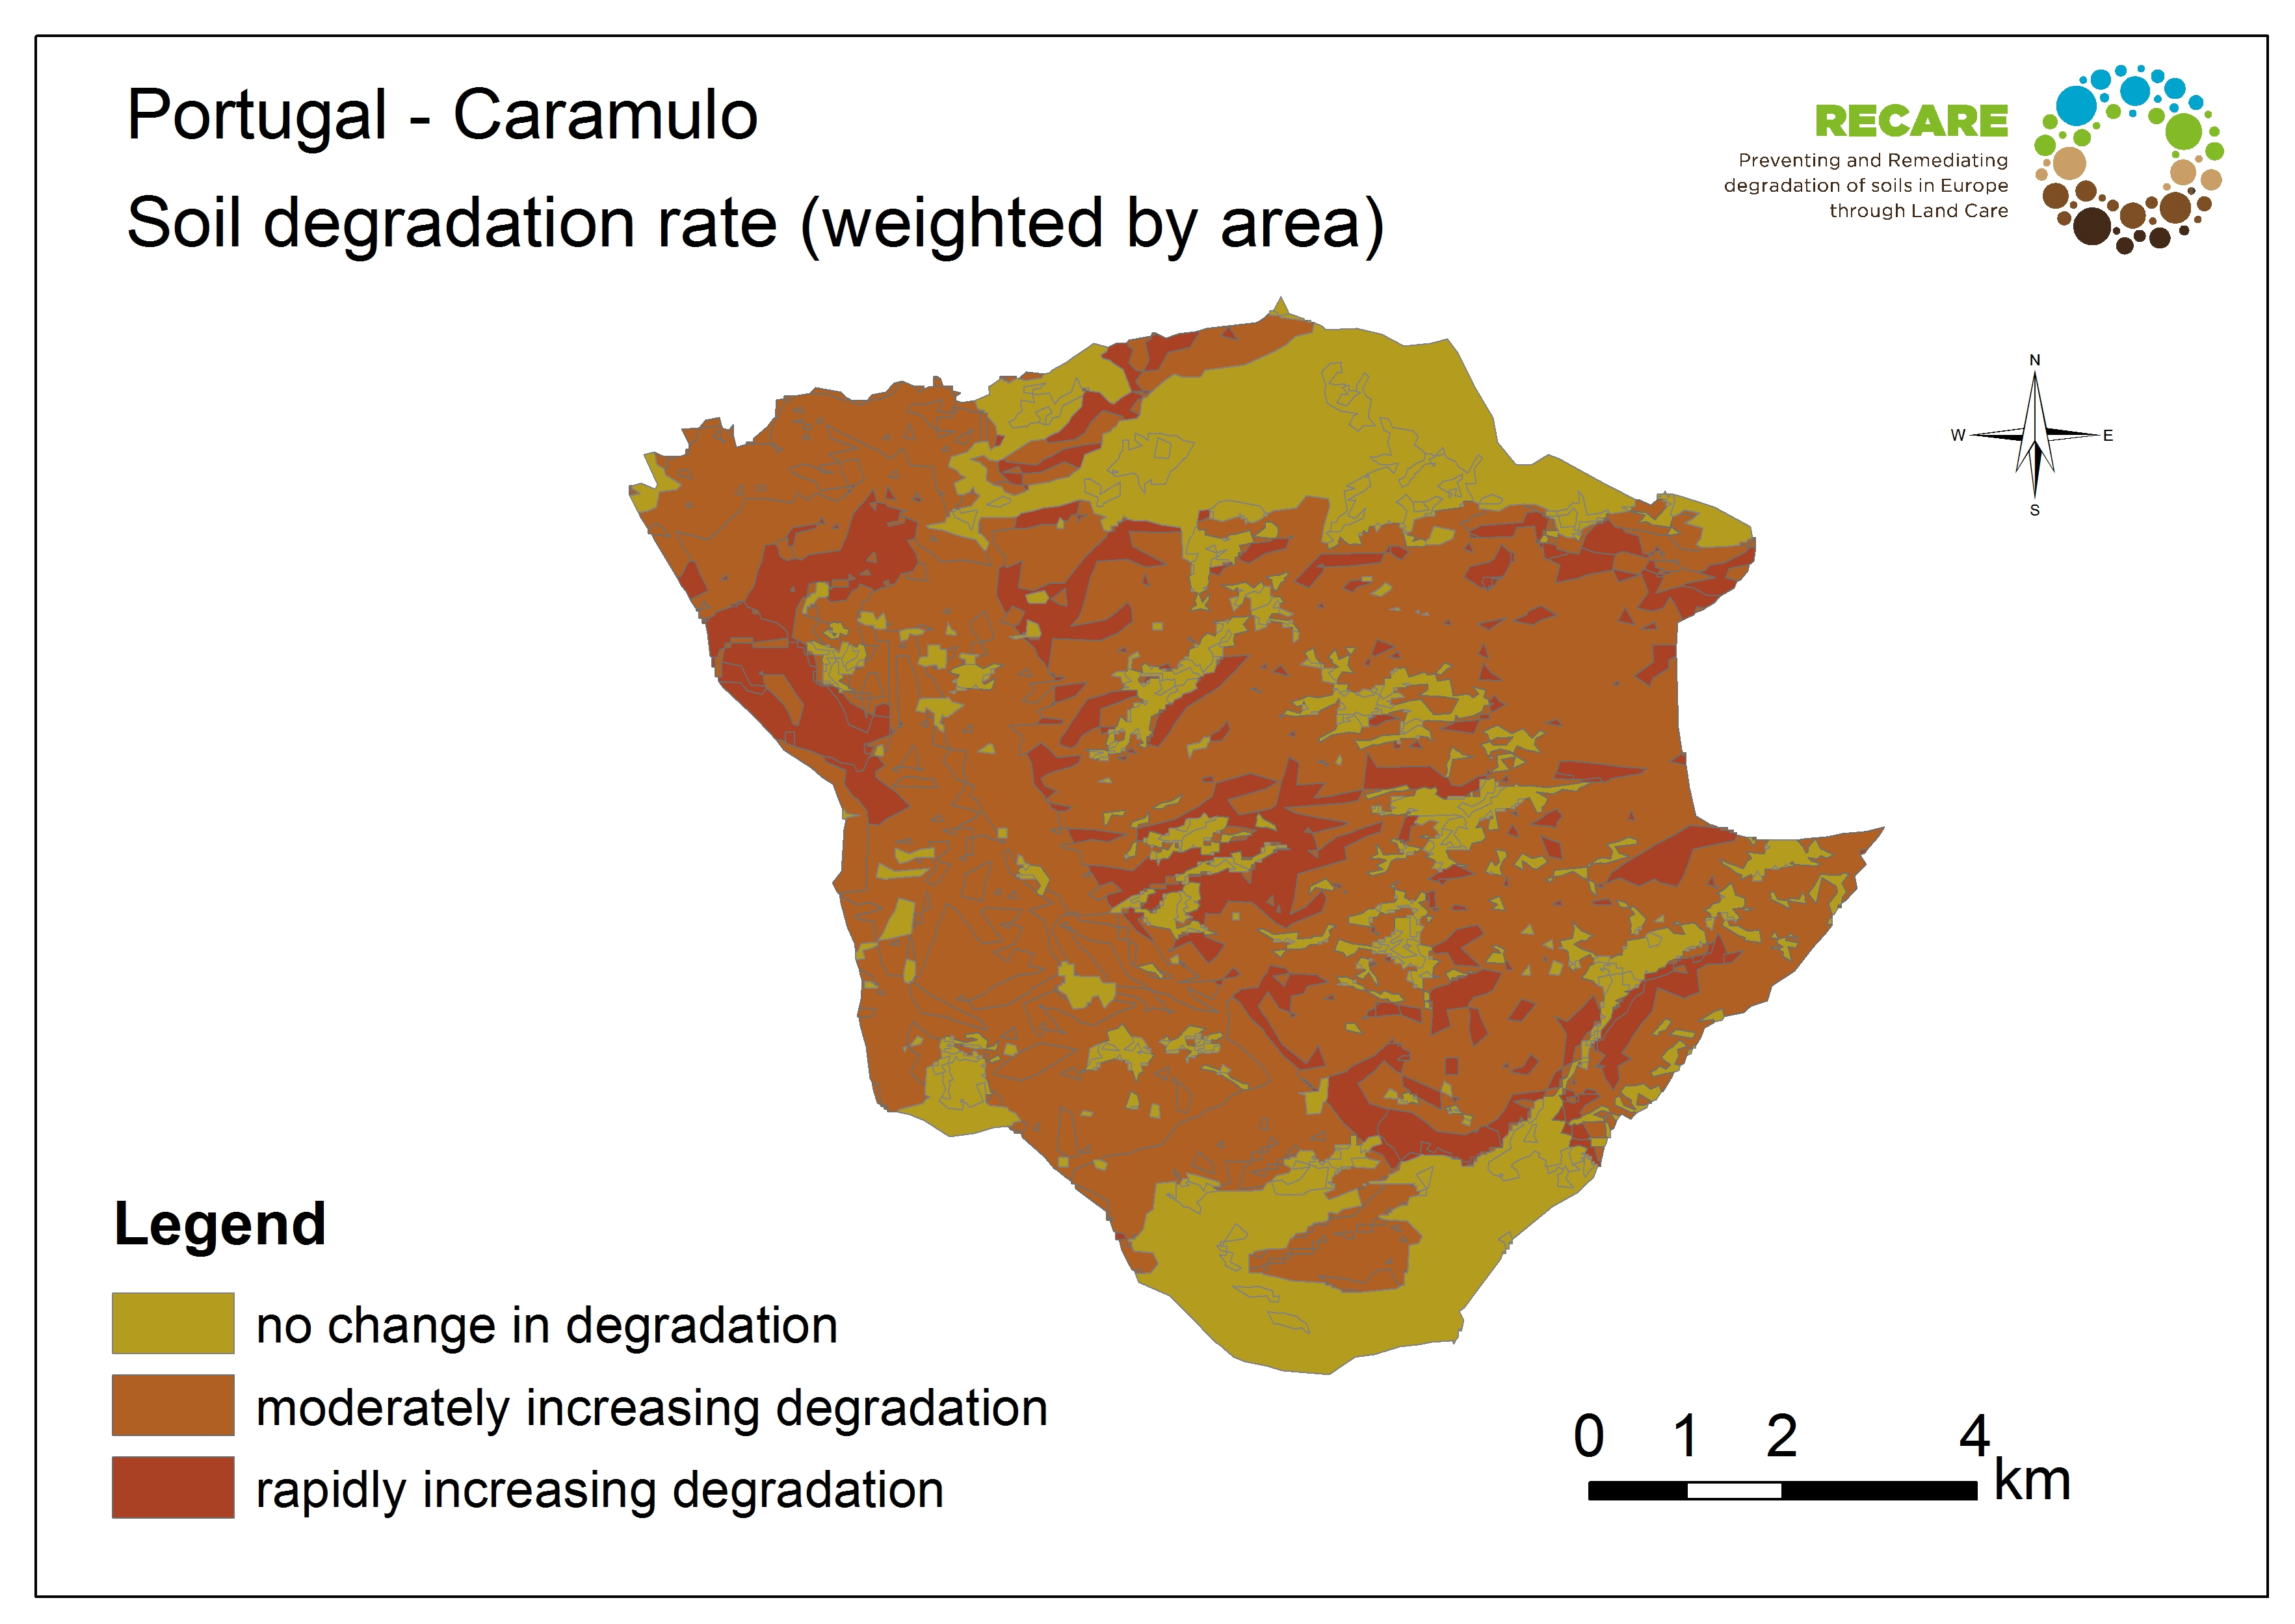 Portugal Caramulo rate of degradation